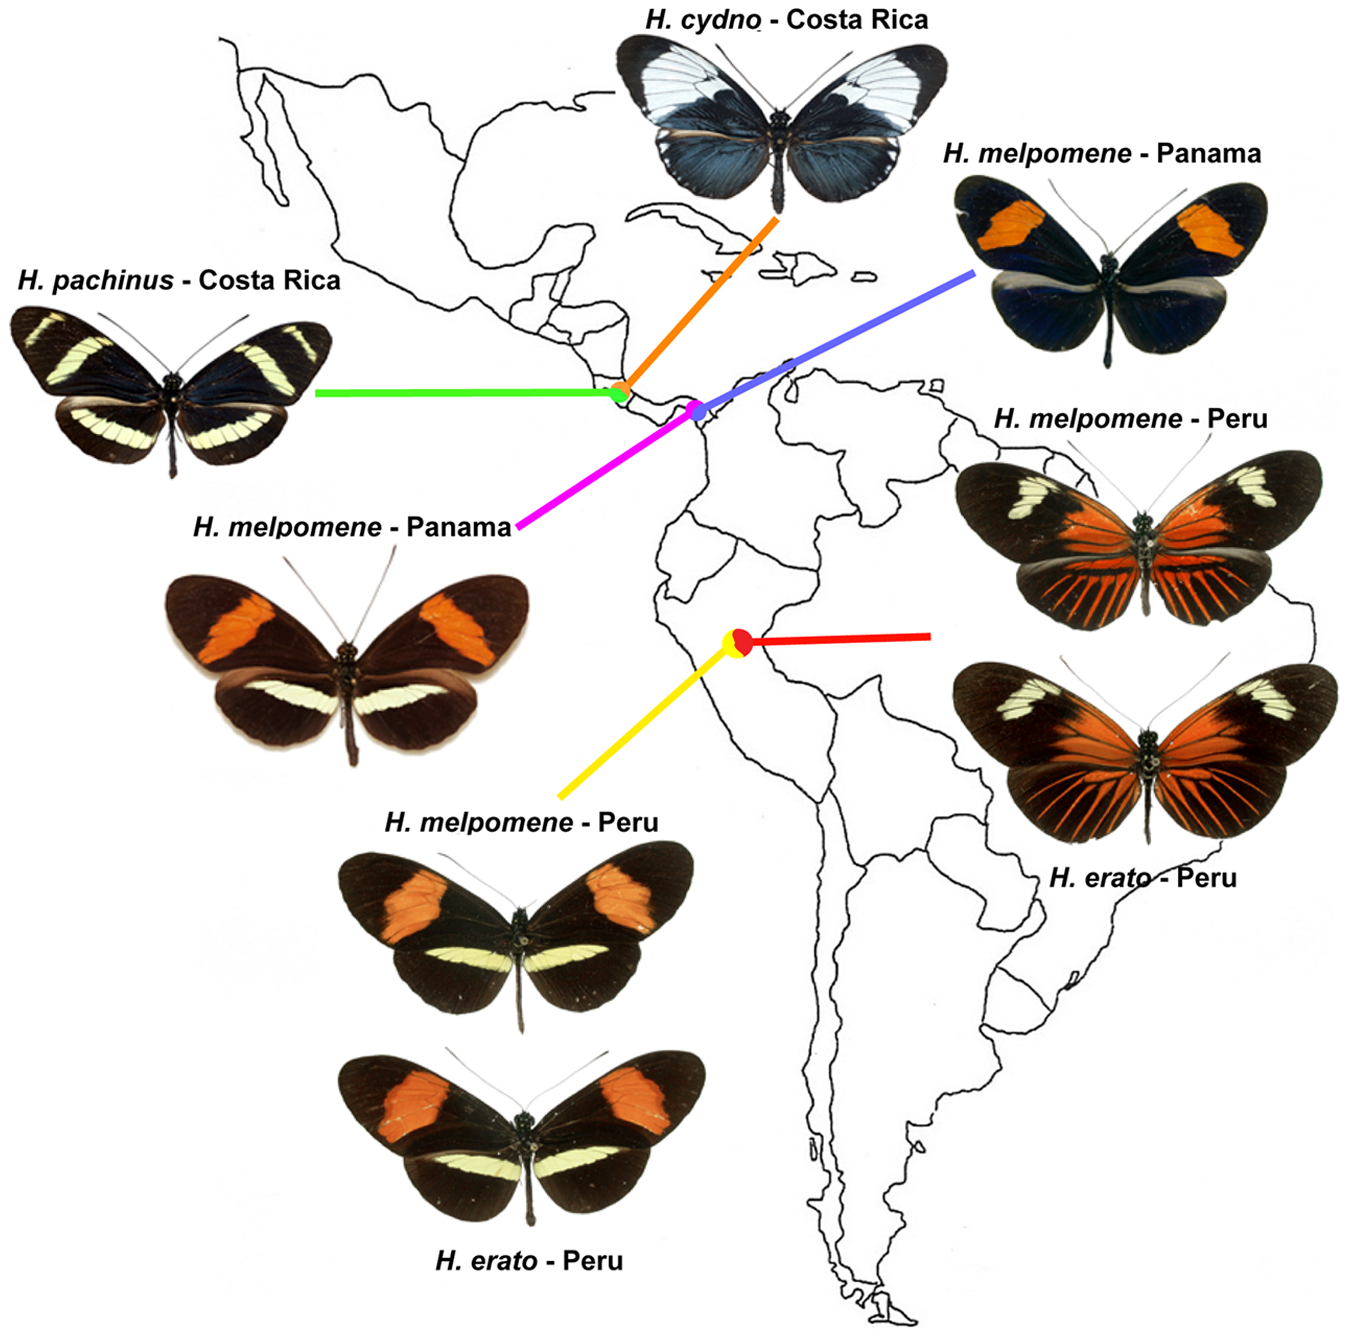 Three natural hybrid zones between parapatric populations of different <i>Heliconius</i> species.